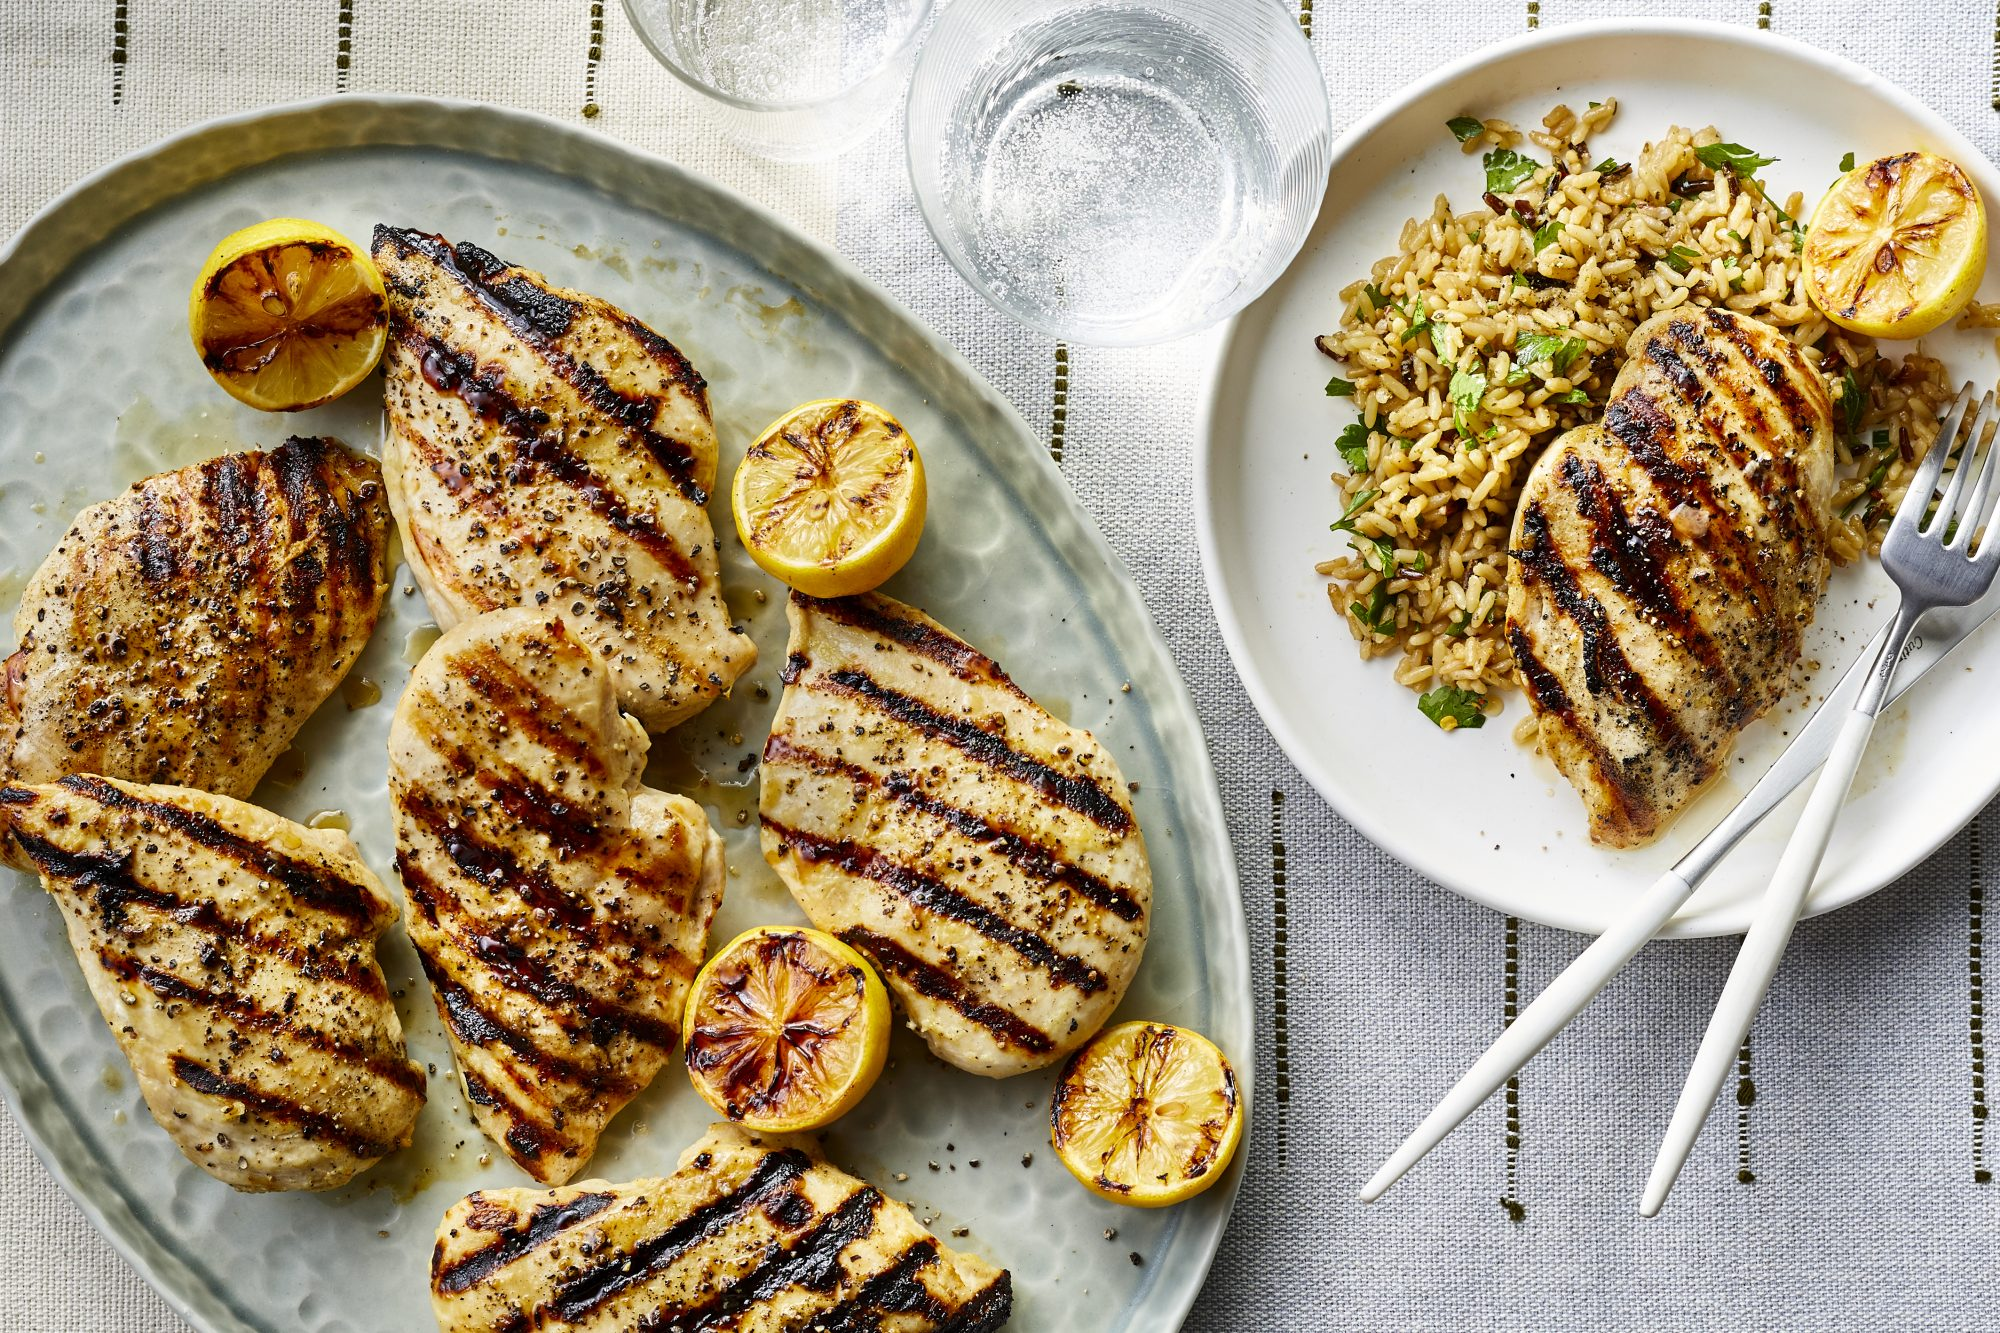 Lemon-Grilled Chicken Breasts